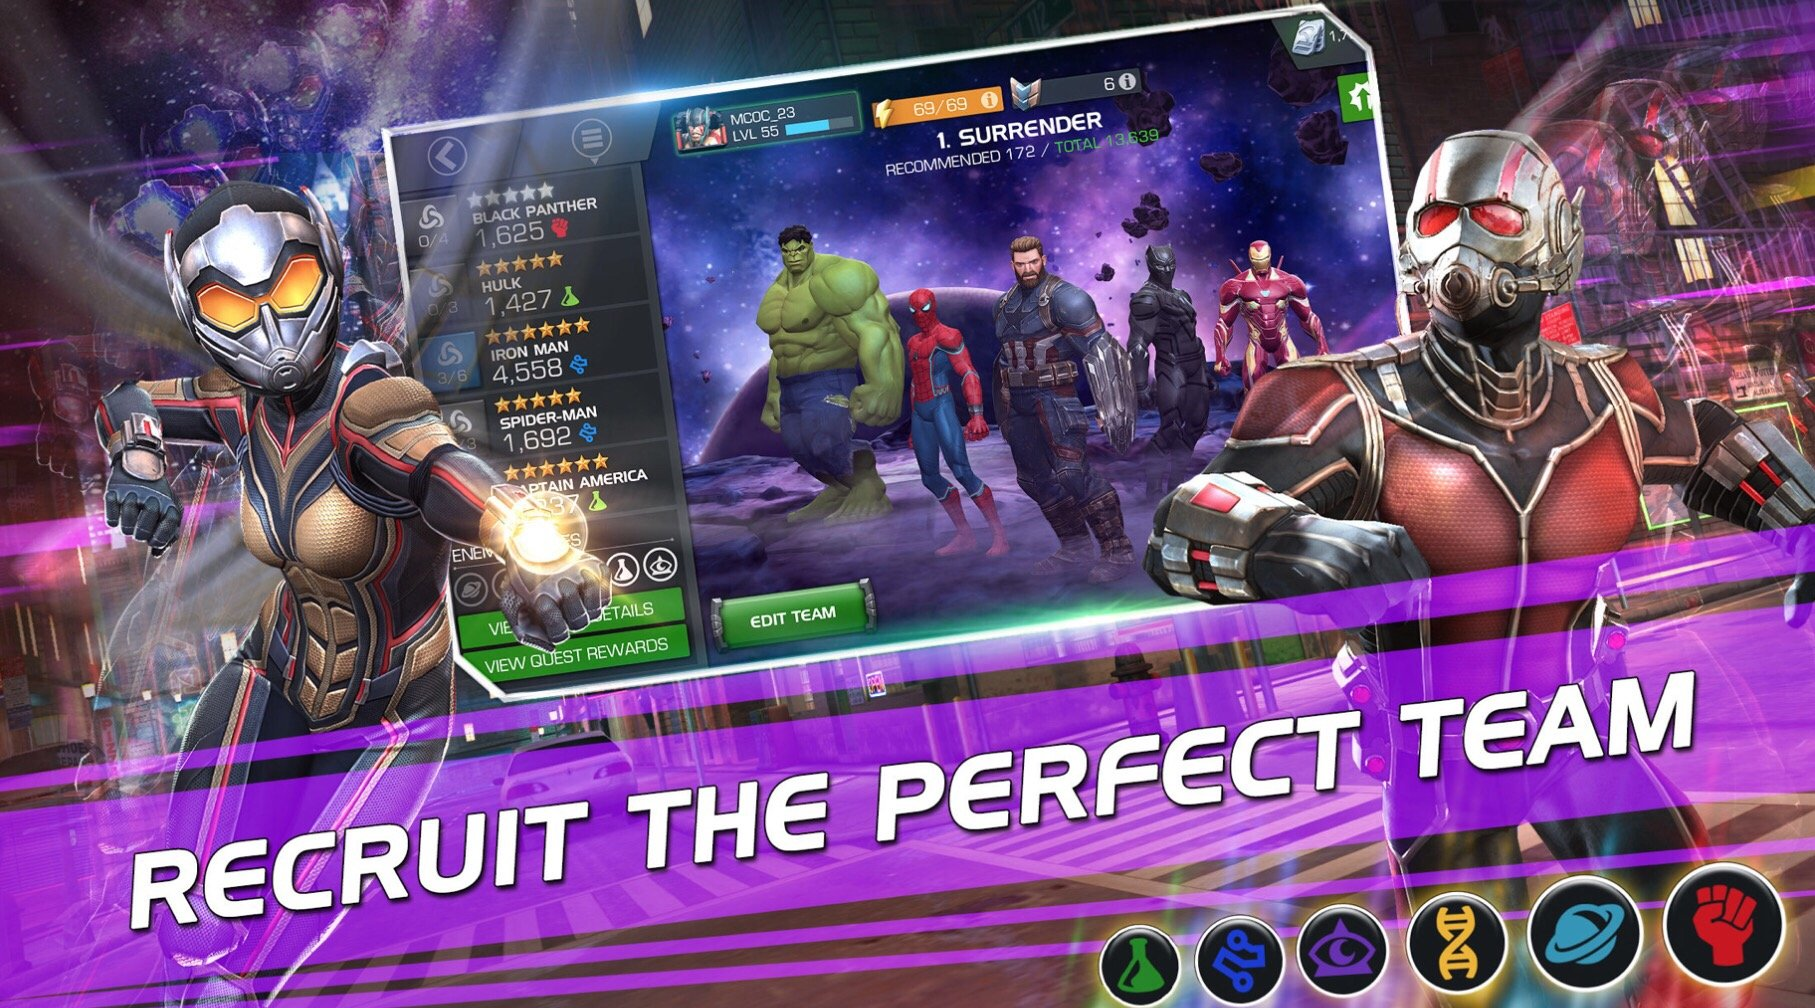 Events Abound in Marvel Games as Marvel's 'Ant-Man and the